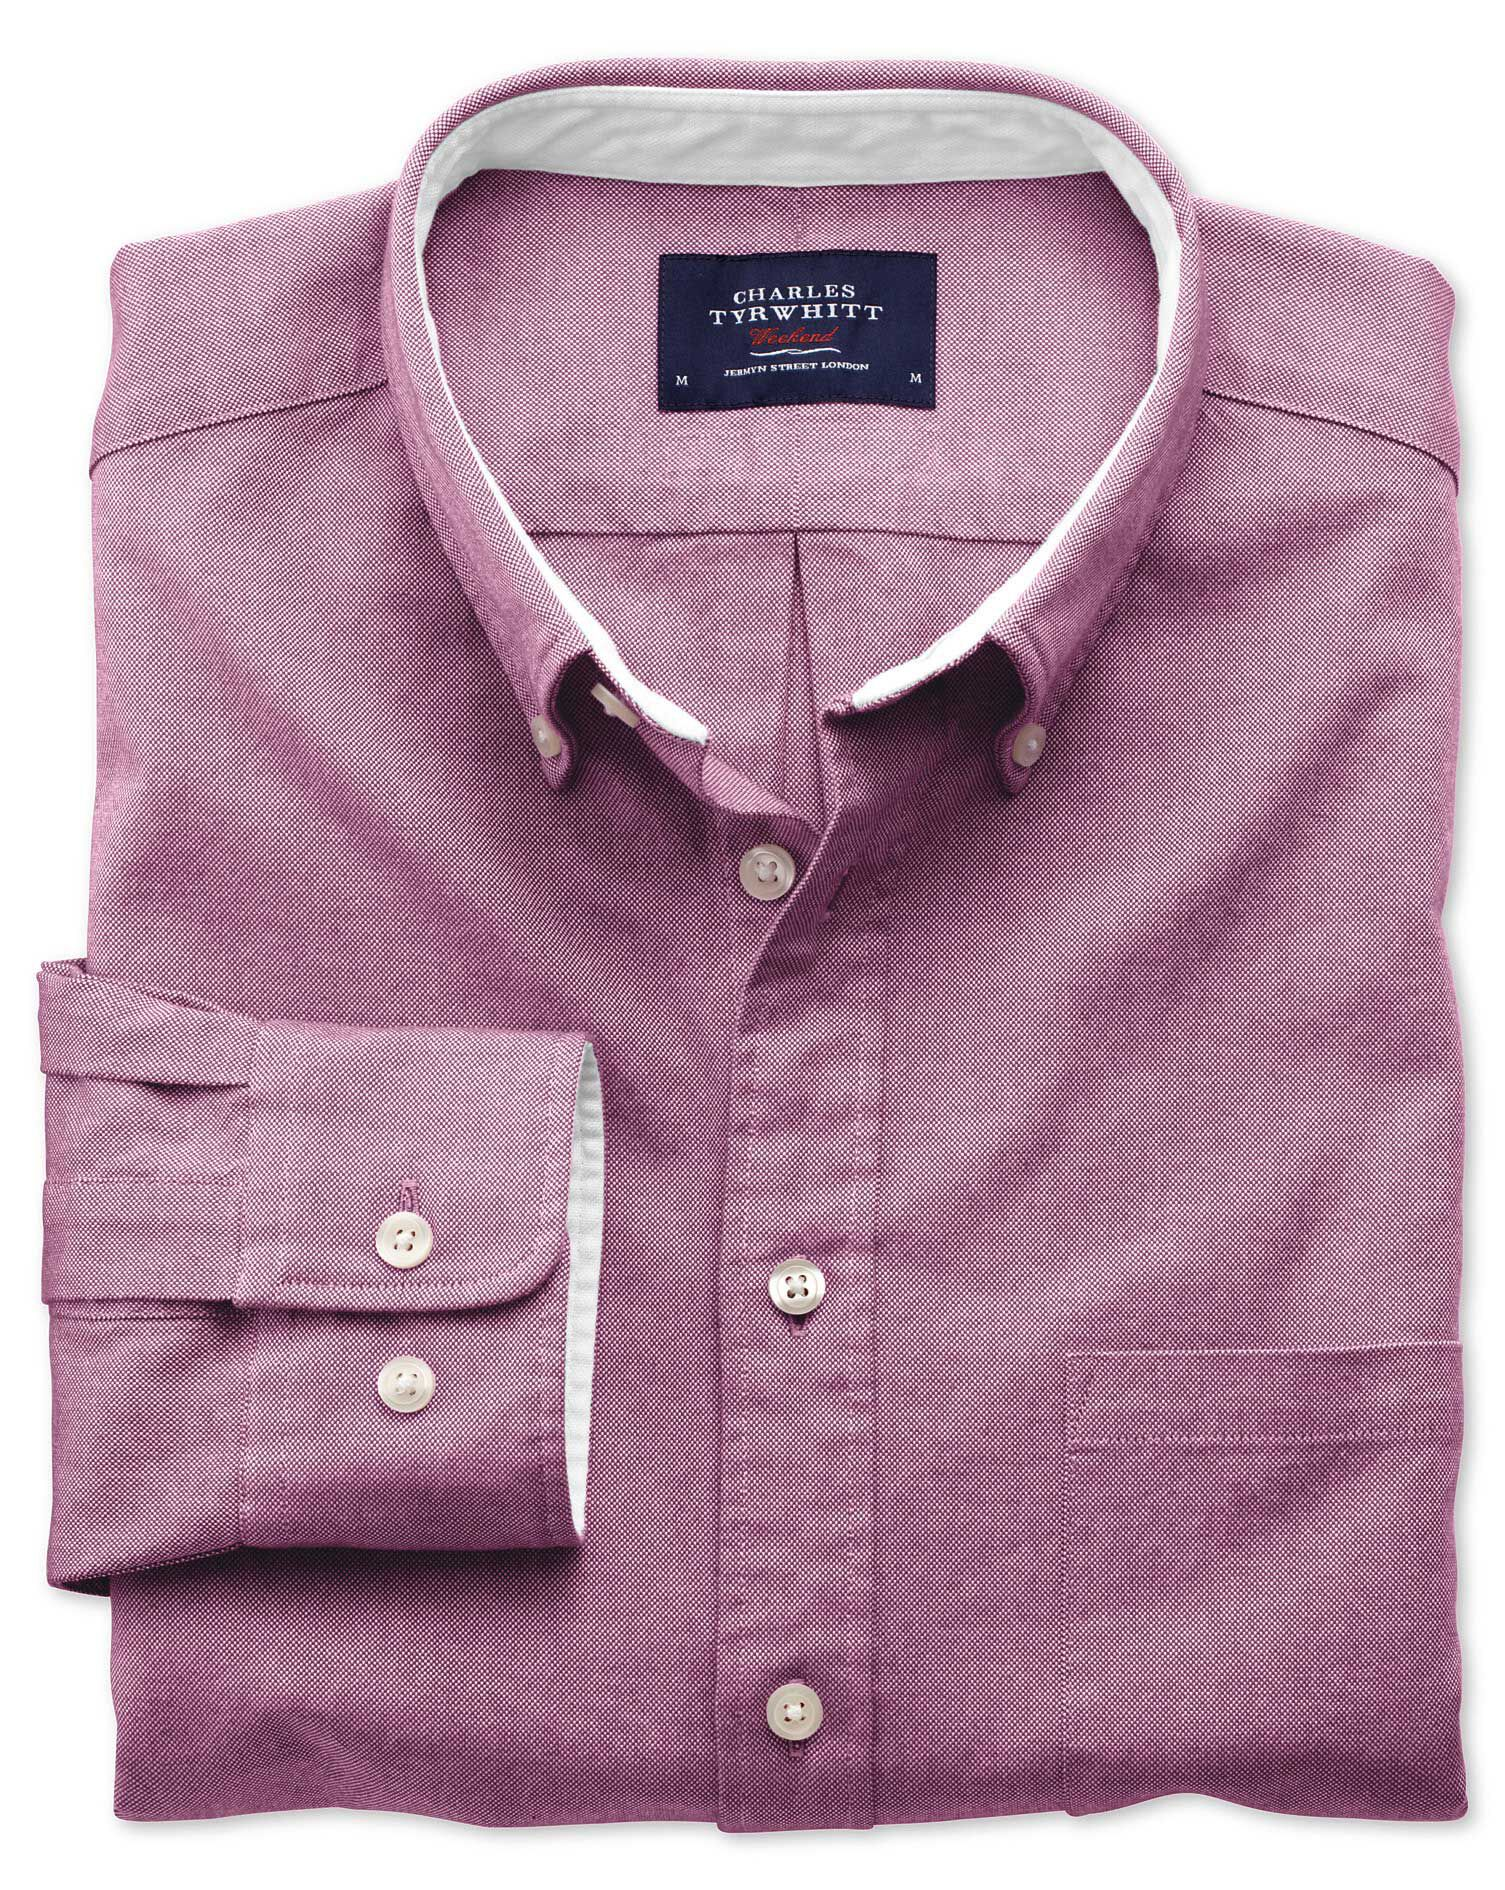 Classic Fit Berry Plain Washed Oxford Cotton Shirt Single Cuff Size Large by Charles Tyrwhitt